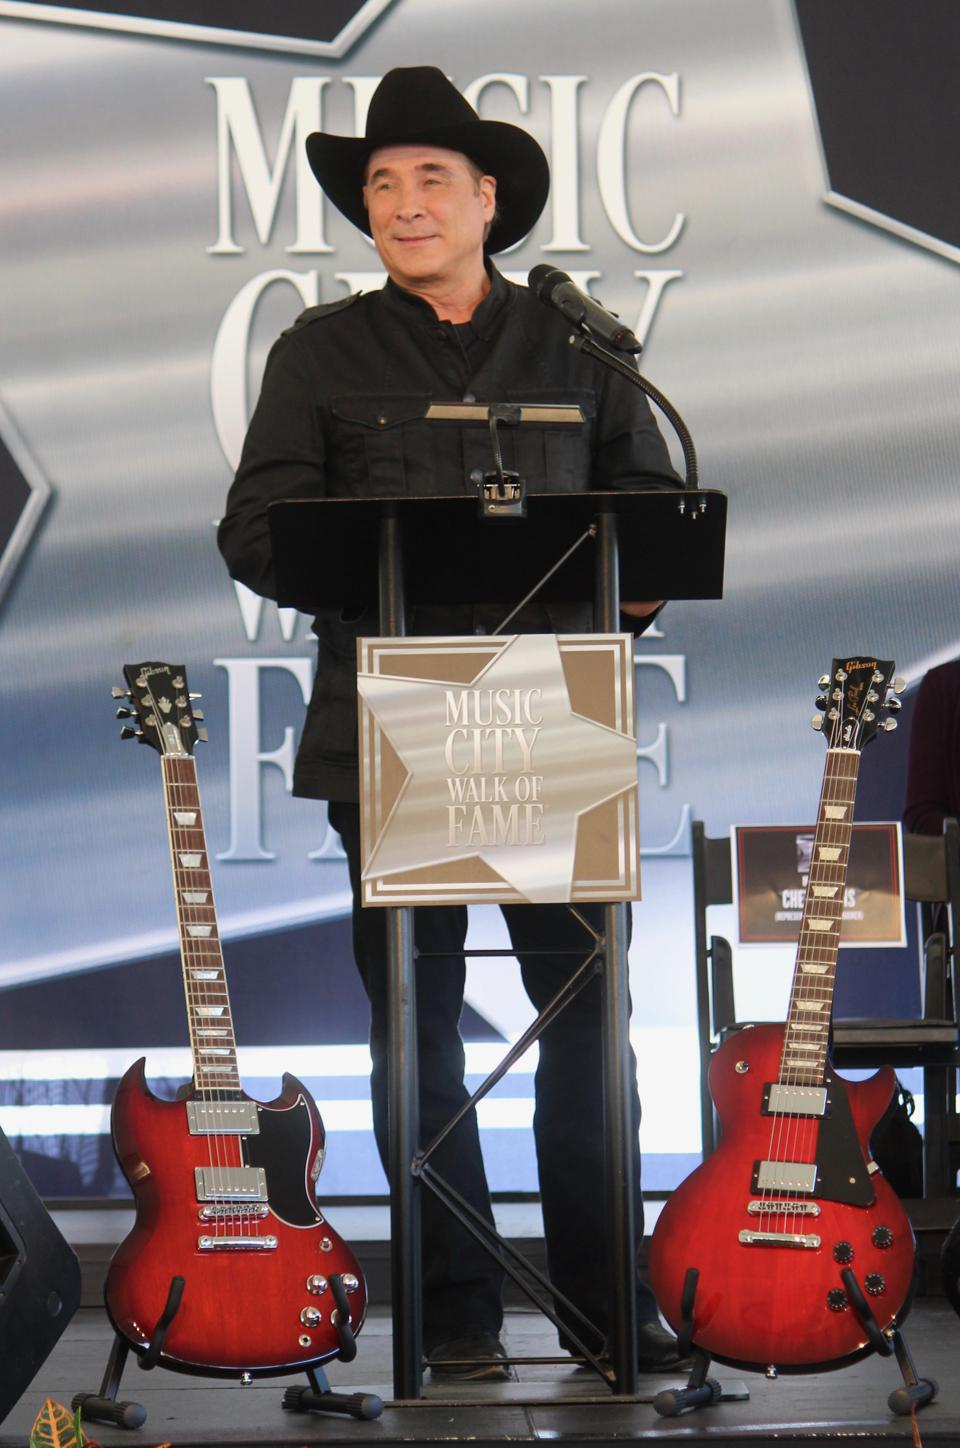 Clint Black accepting his star at the Music City Walk of Fame